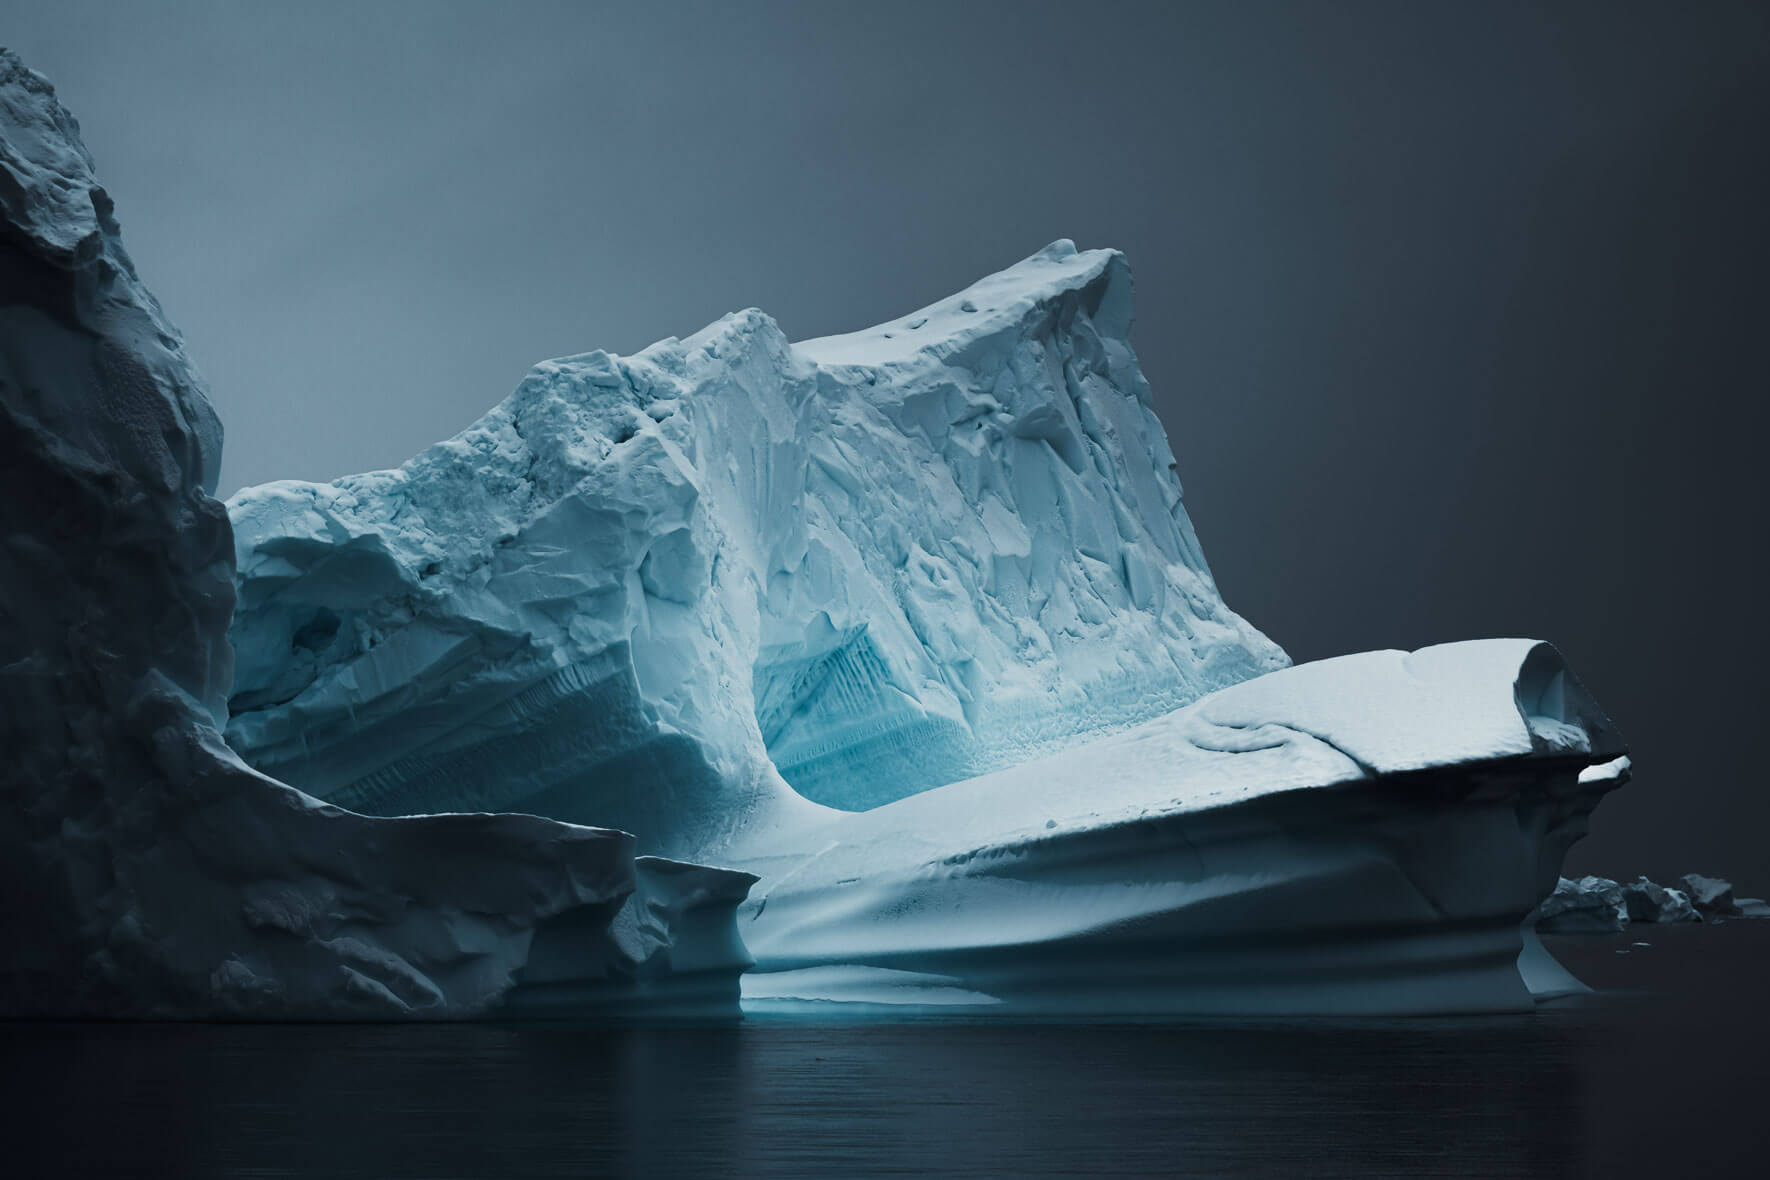 Abstract and dark icebergs in Antarctica